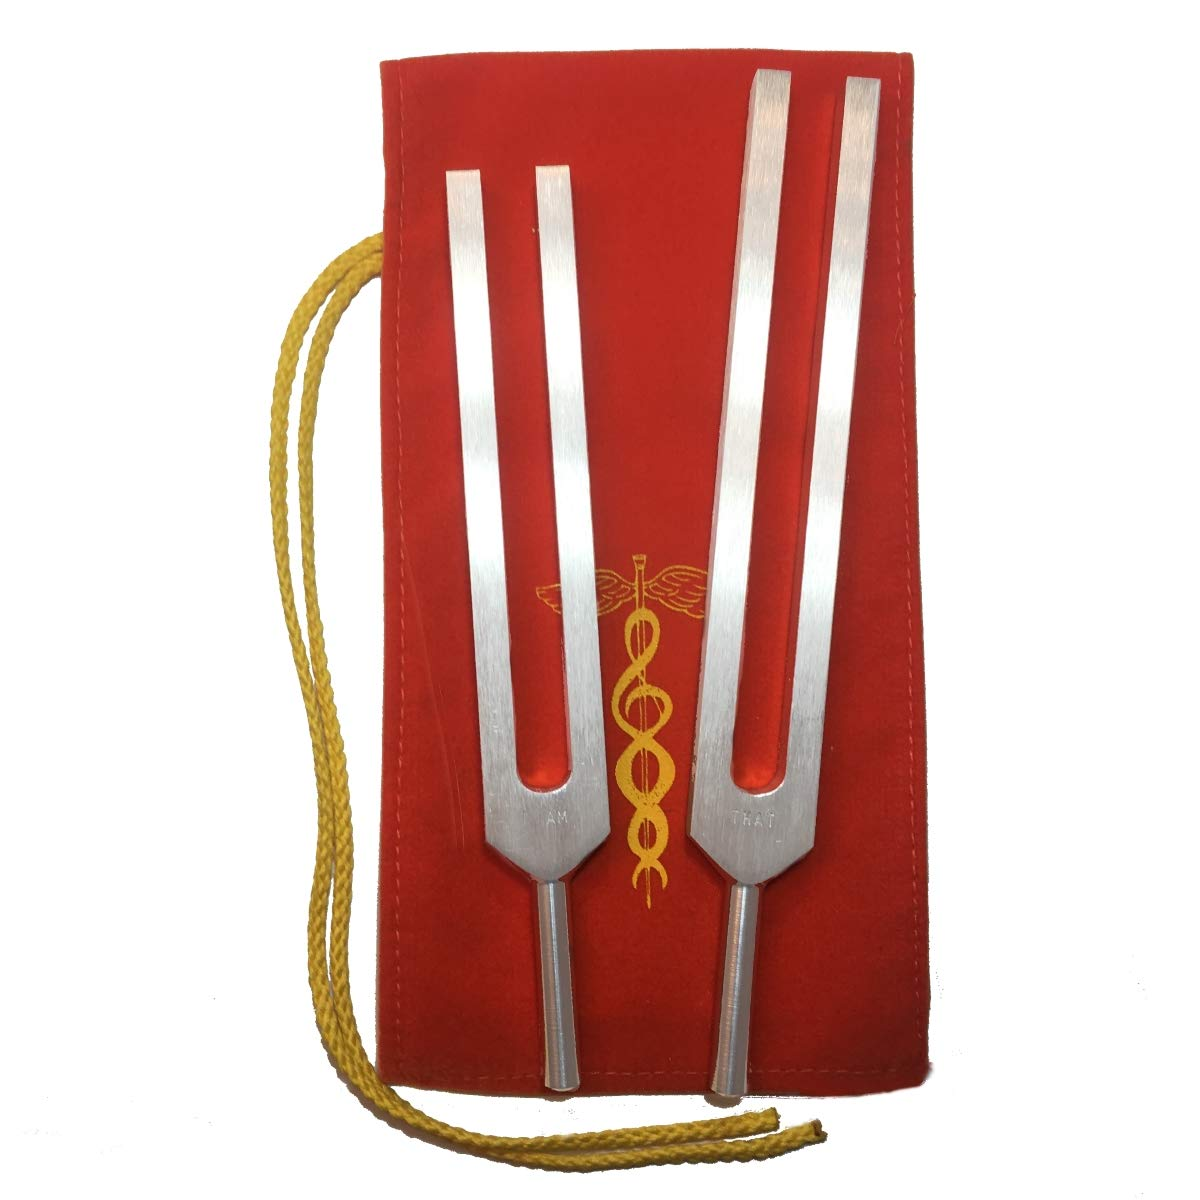 The MOSES CODE Tuning Forks by Jonathan Goldman's Healing Sounds